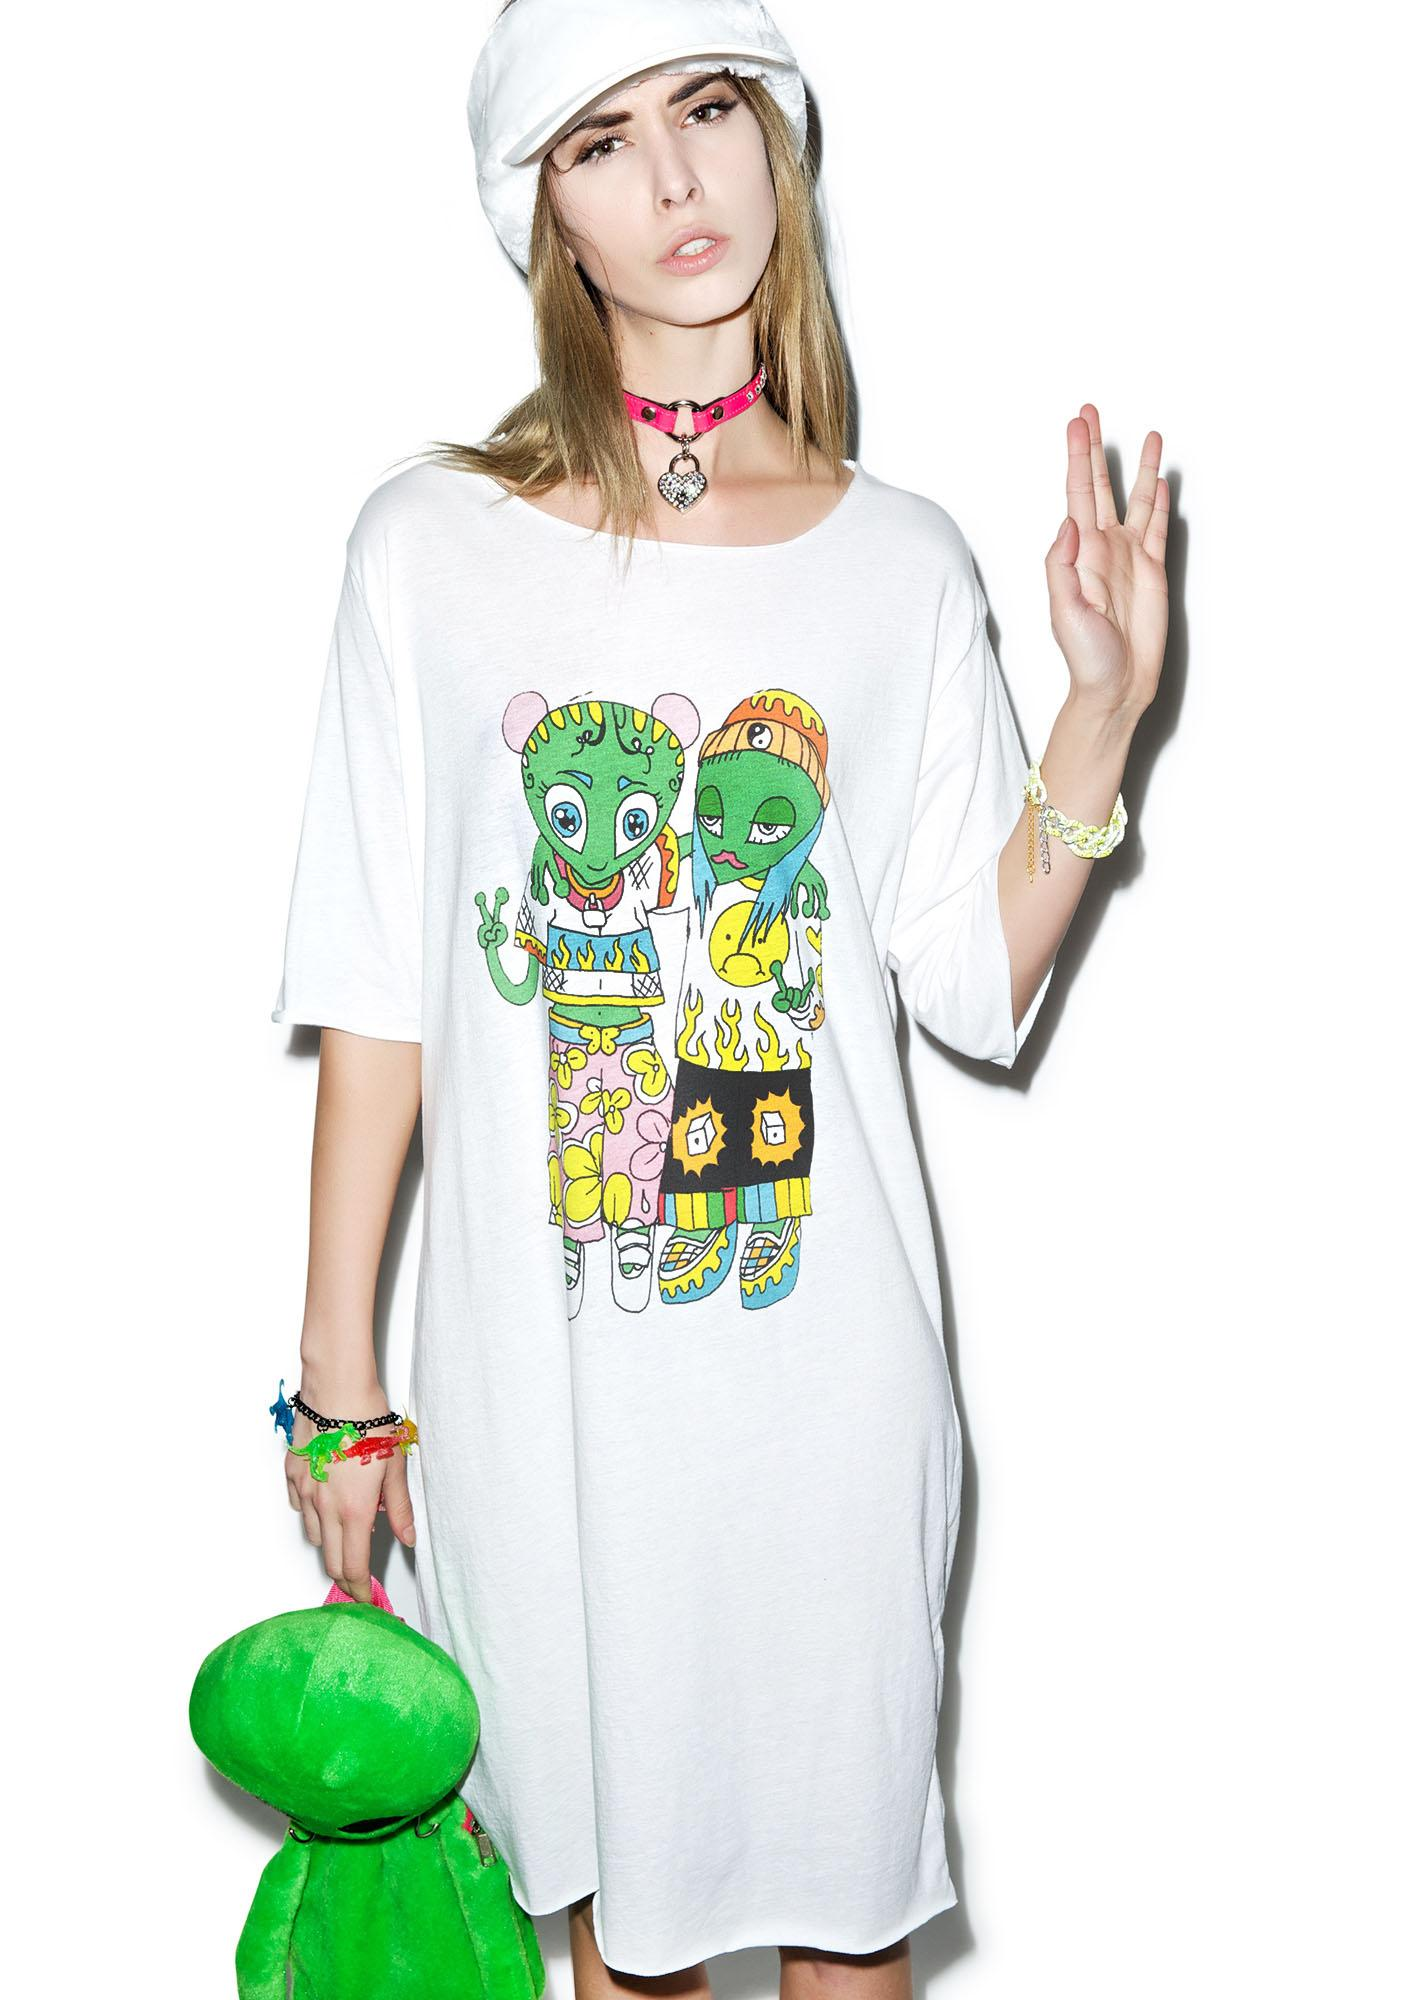 Y.R.U. Came In Peace Tee Dress